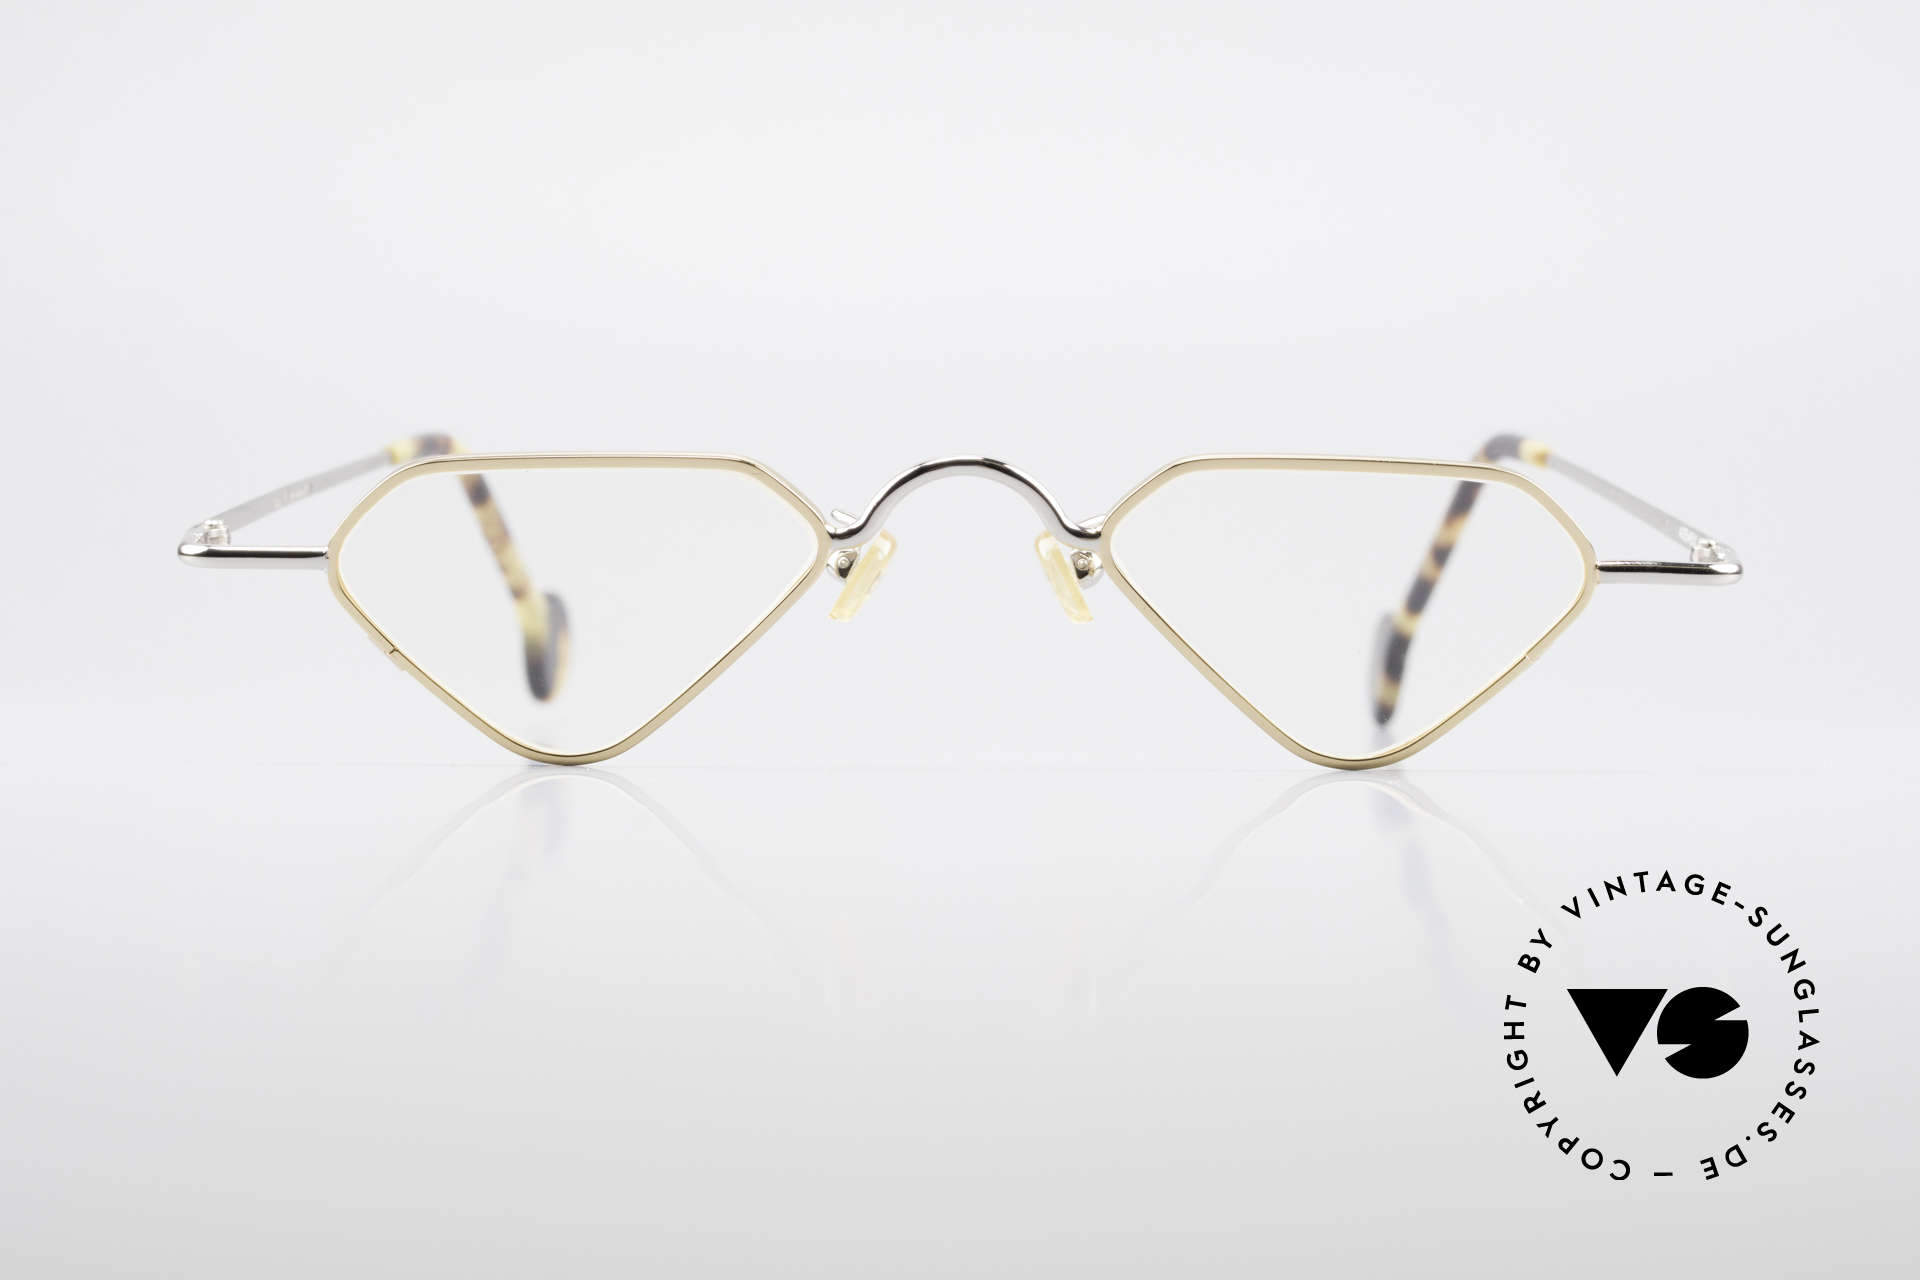 L.A. Eyeworks Millie 451 Reading Glasses Like A Diamond, frame is shaped like a diamond (a true EYE-CATCHER), Made for Men and Women